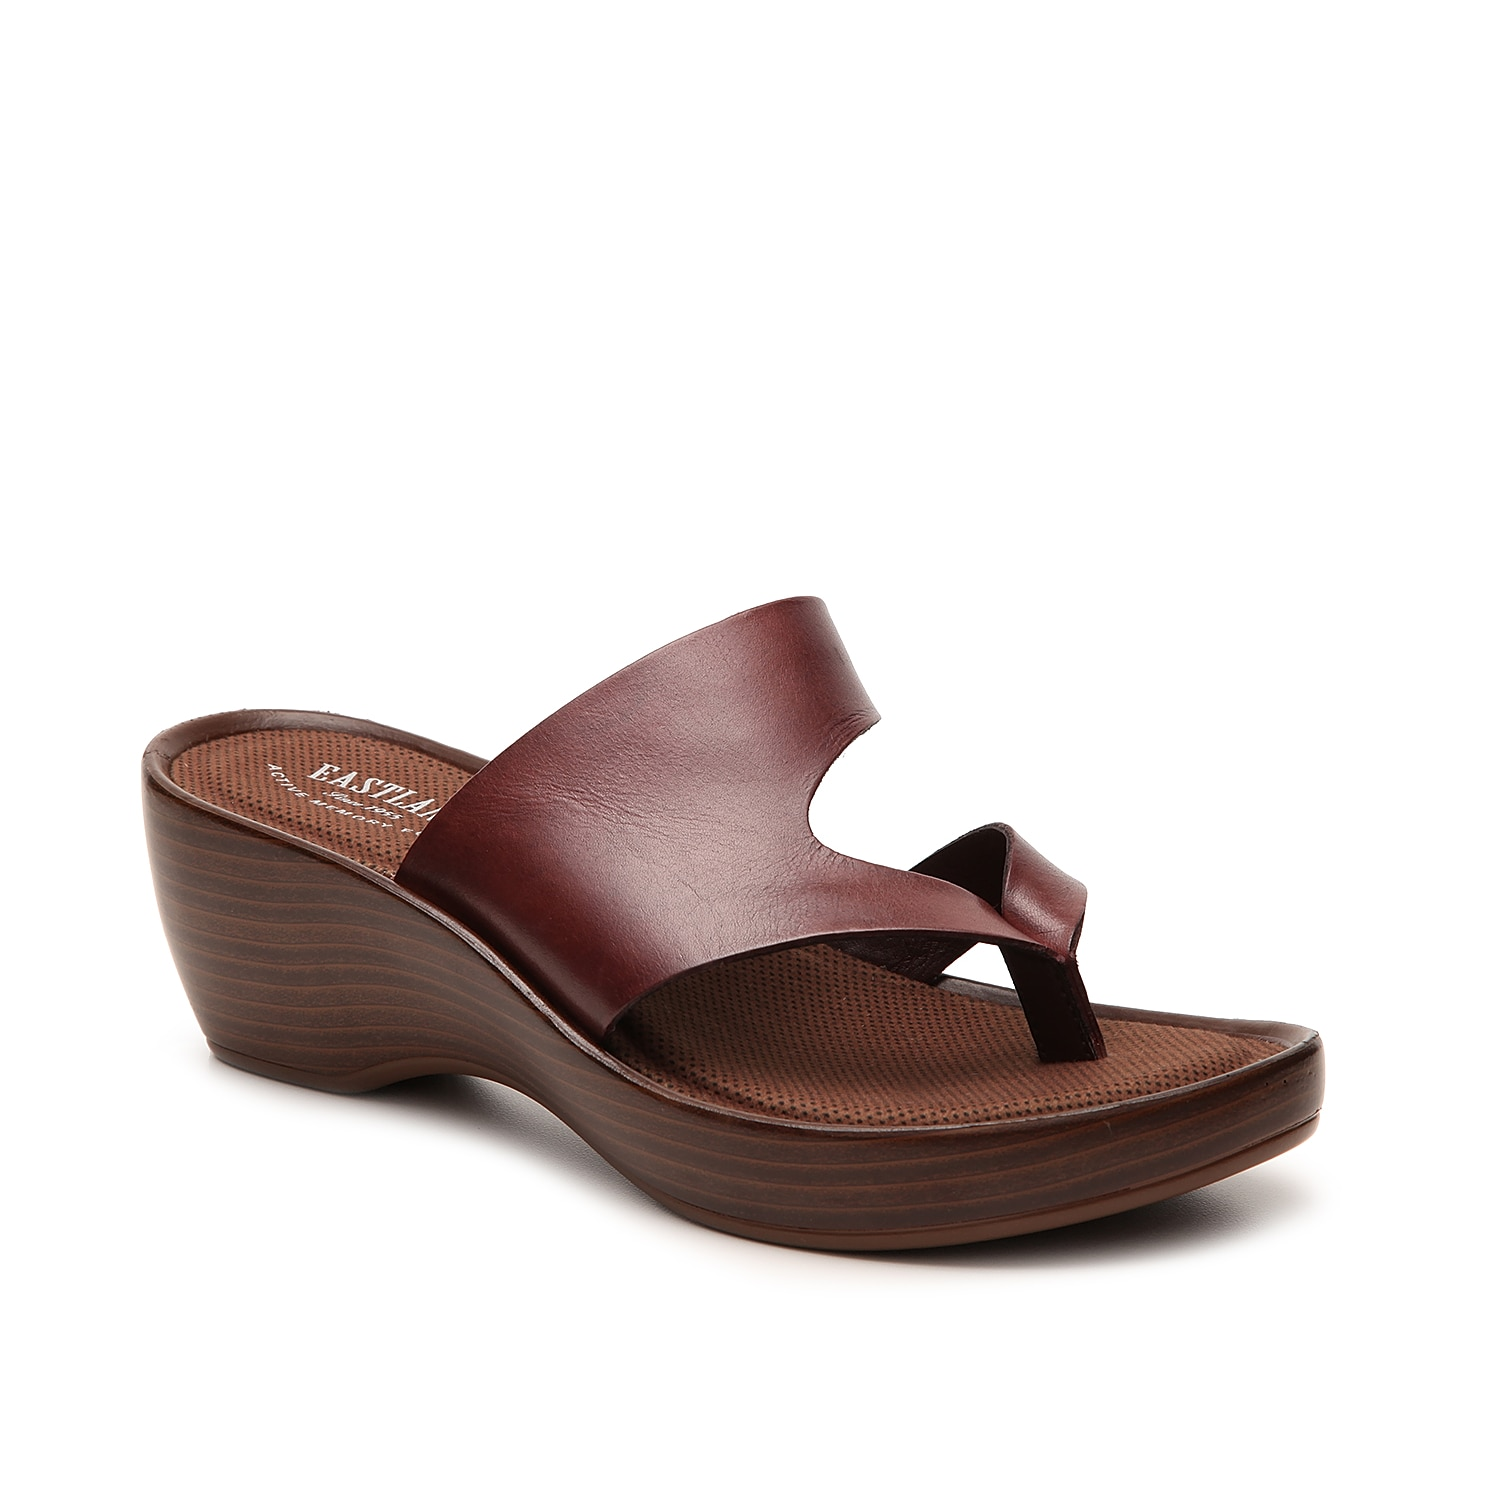 Slide into a versatile leather sandal designed for both comfort and style! With a plush memory foam footbed, the Eastland Laurel thong sandals are the perfect wedges for all day casual wear.